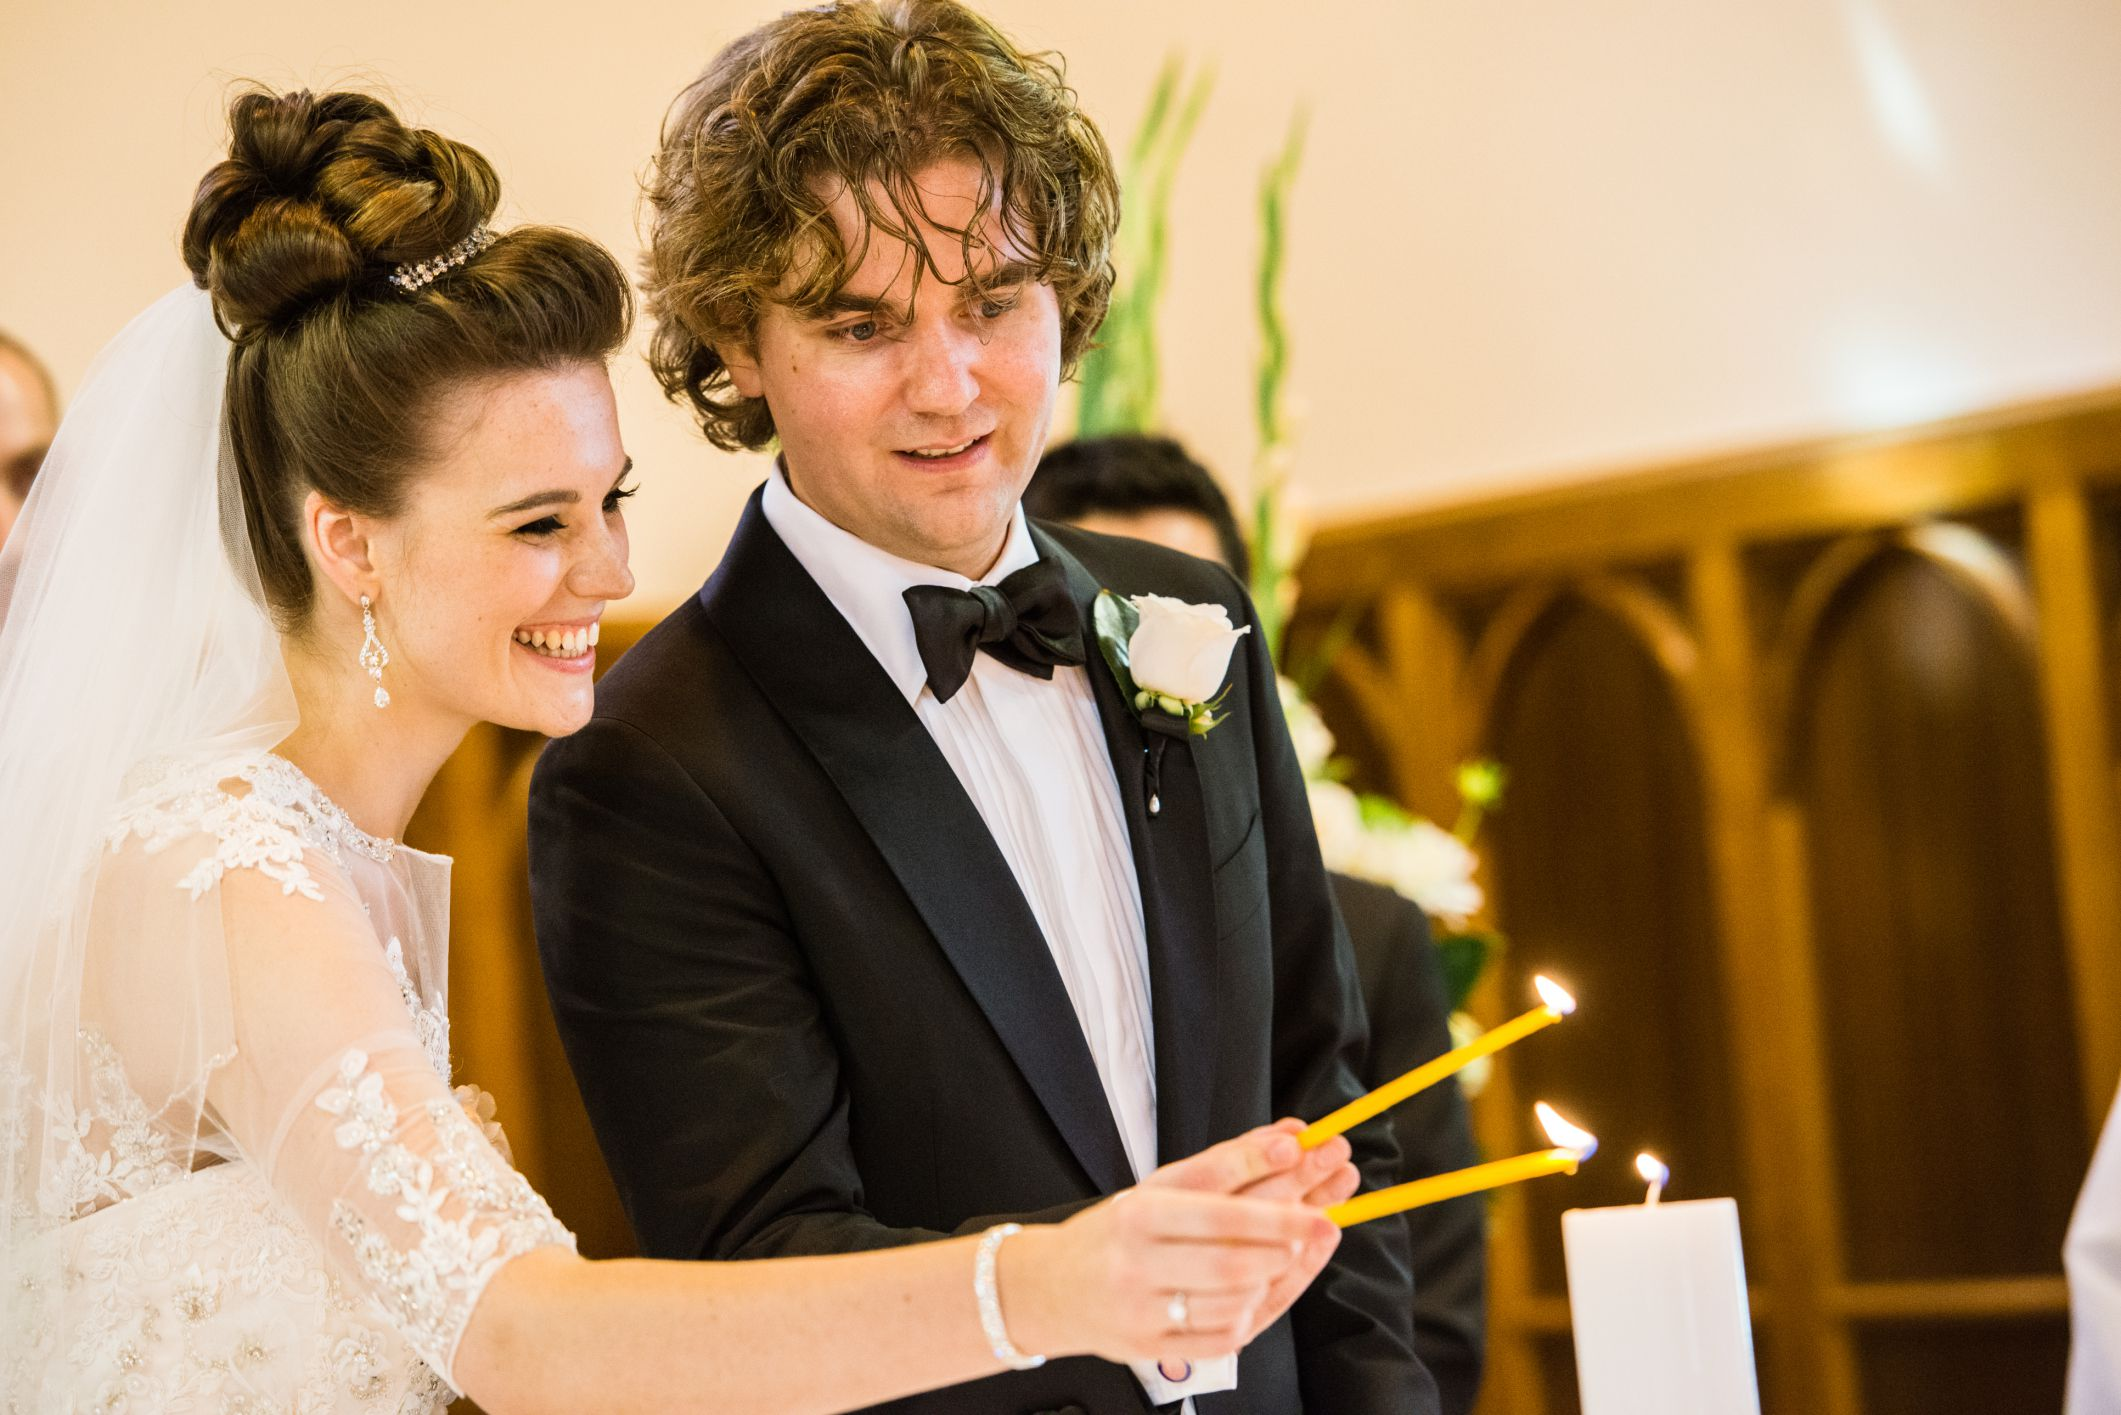 Tips For Lighting The Candles In Your Christian Wedding